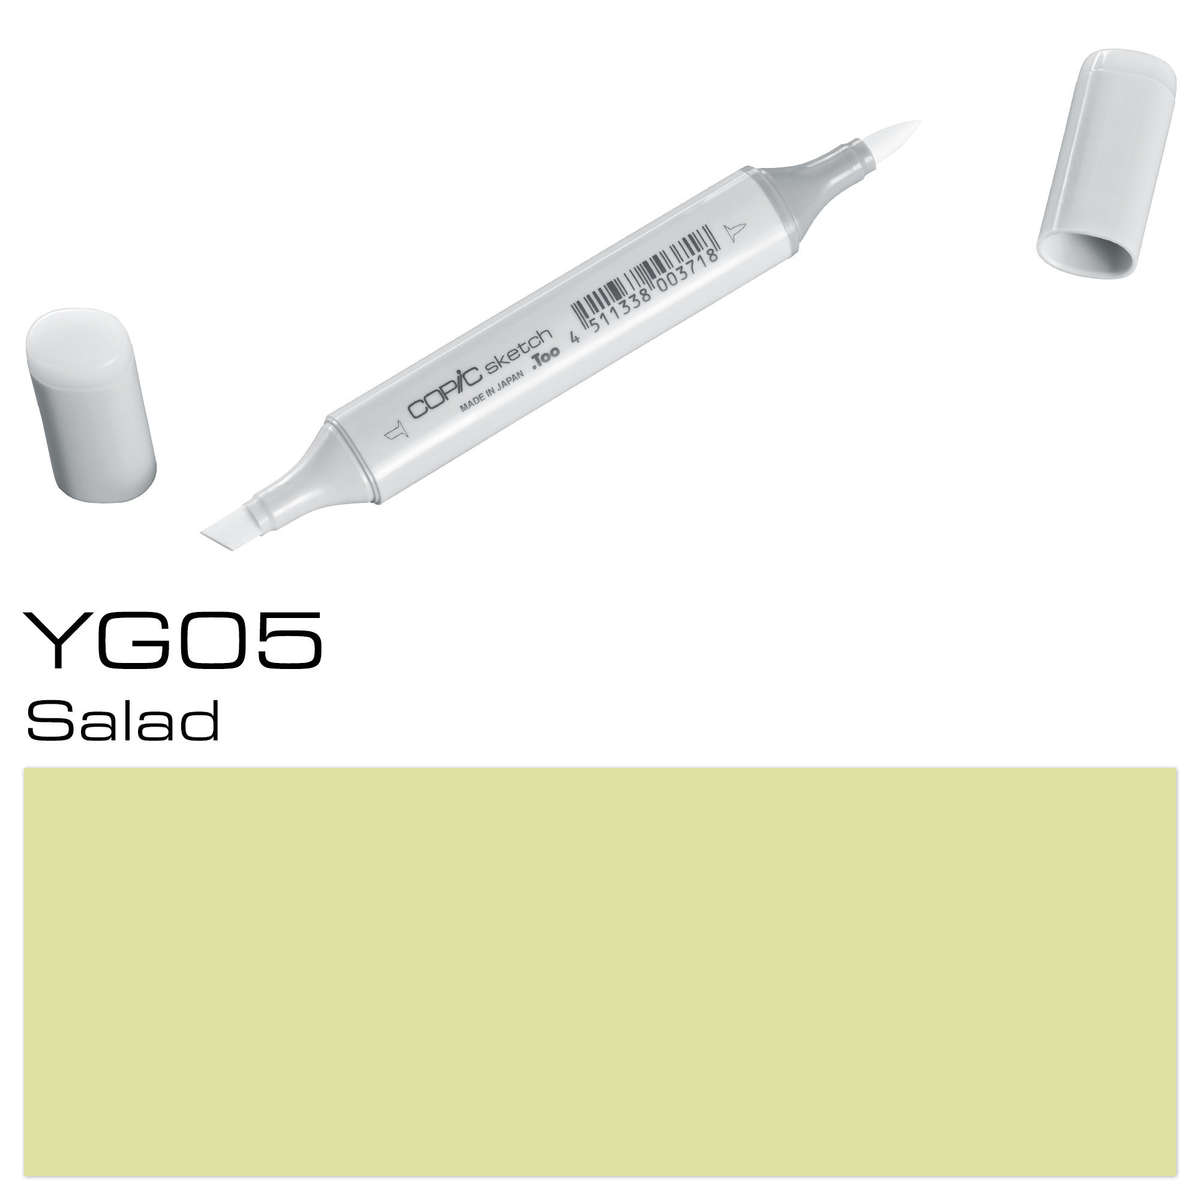 Copic Sketch YG 05 salad